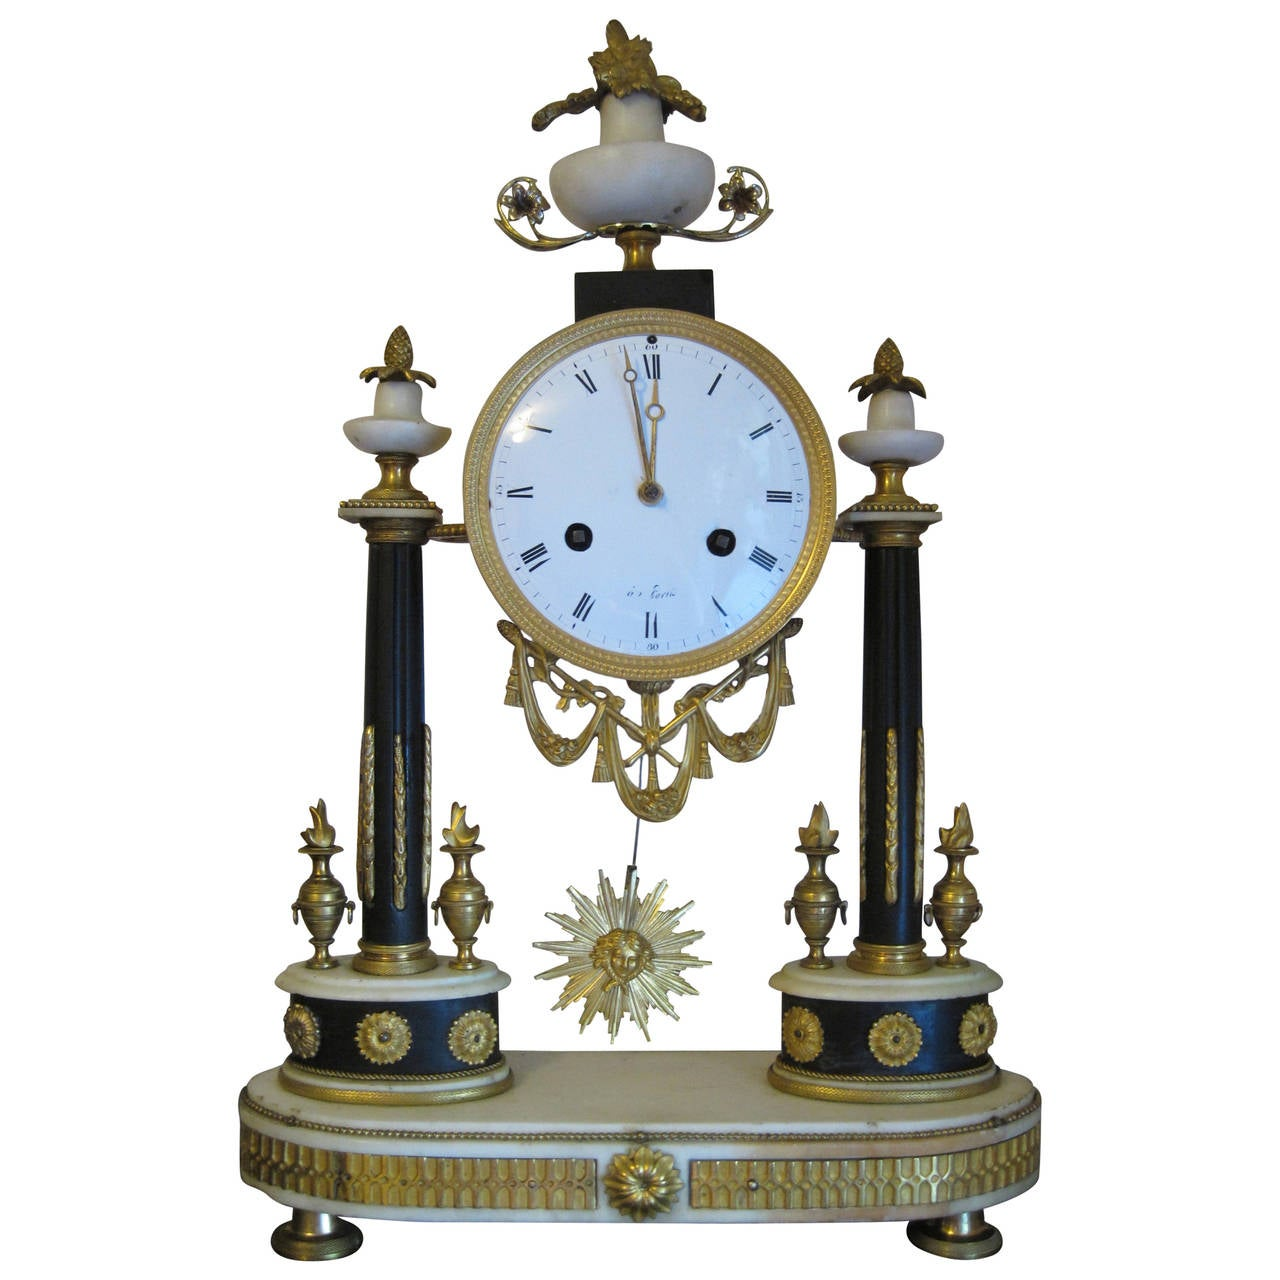 French Empire Period Marble and Ormolu Clock, Early 19th Century For Sale